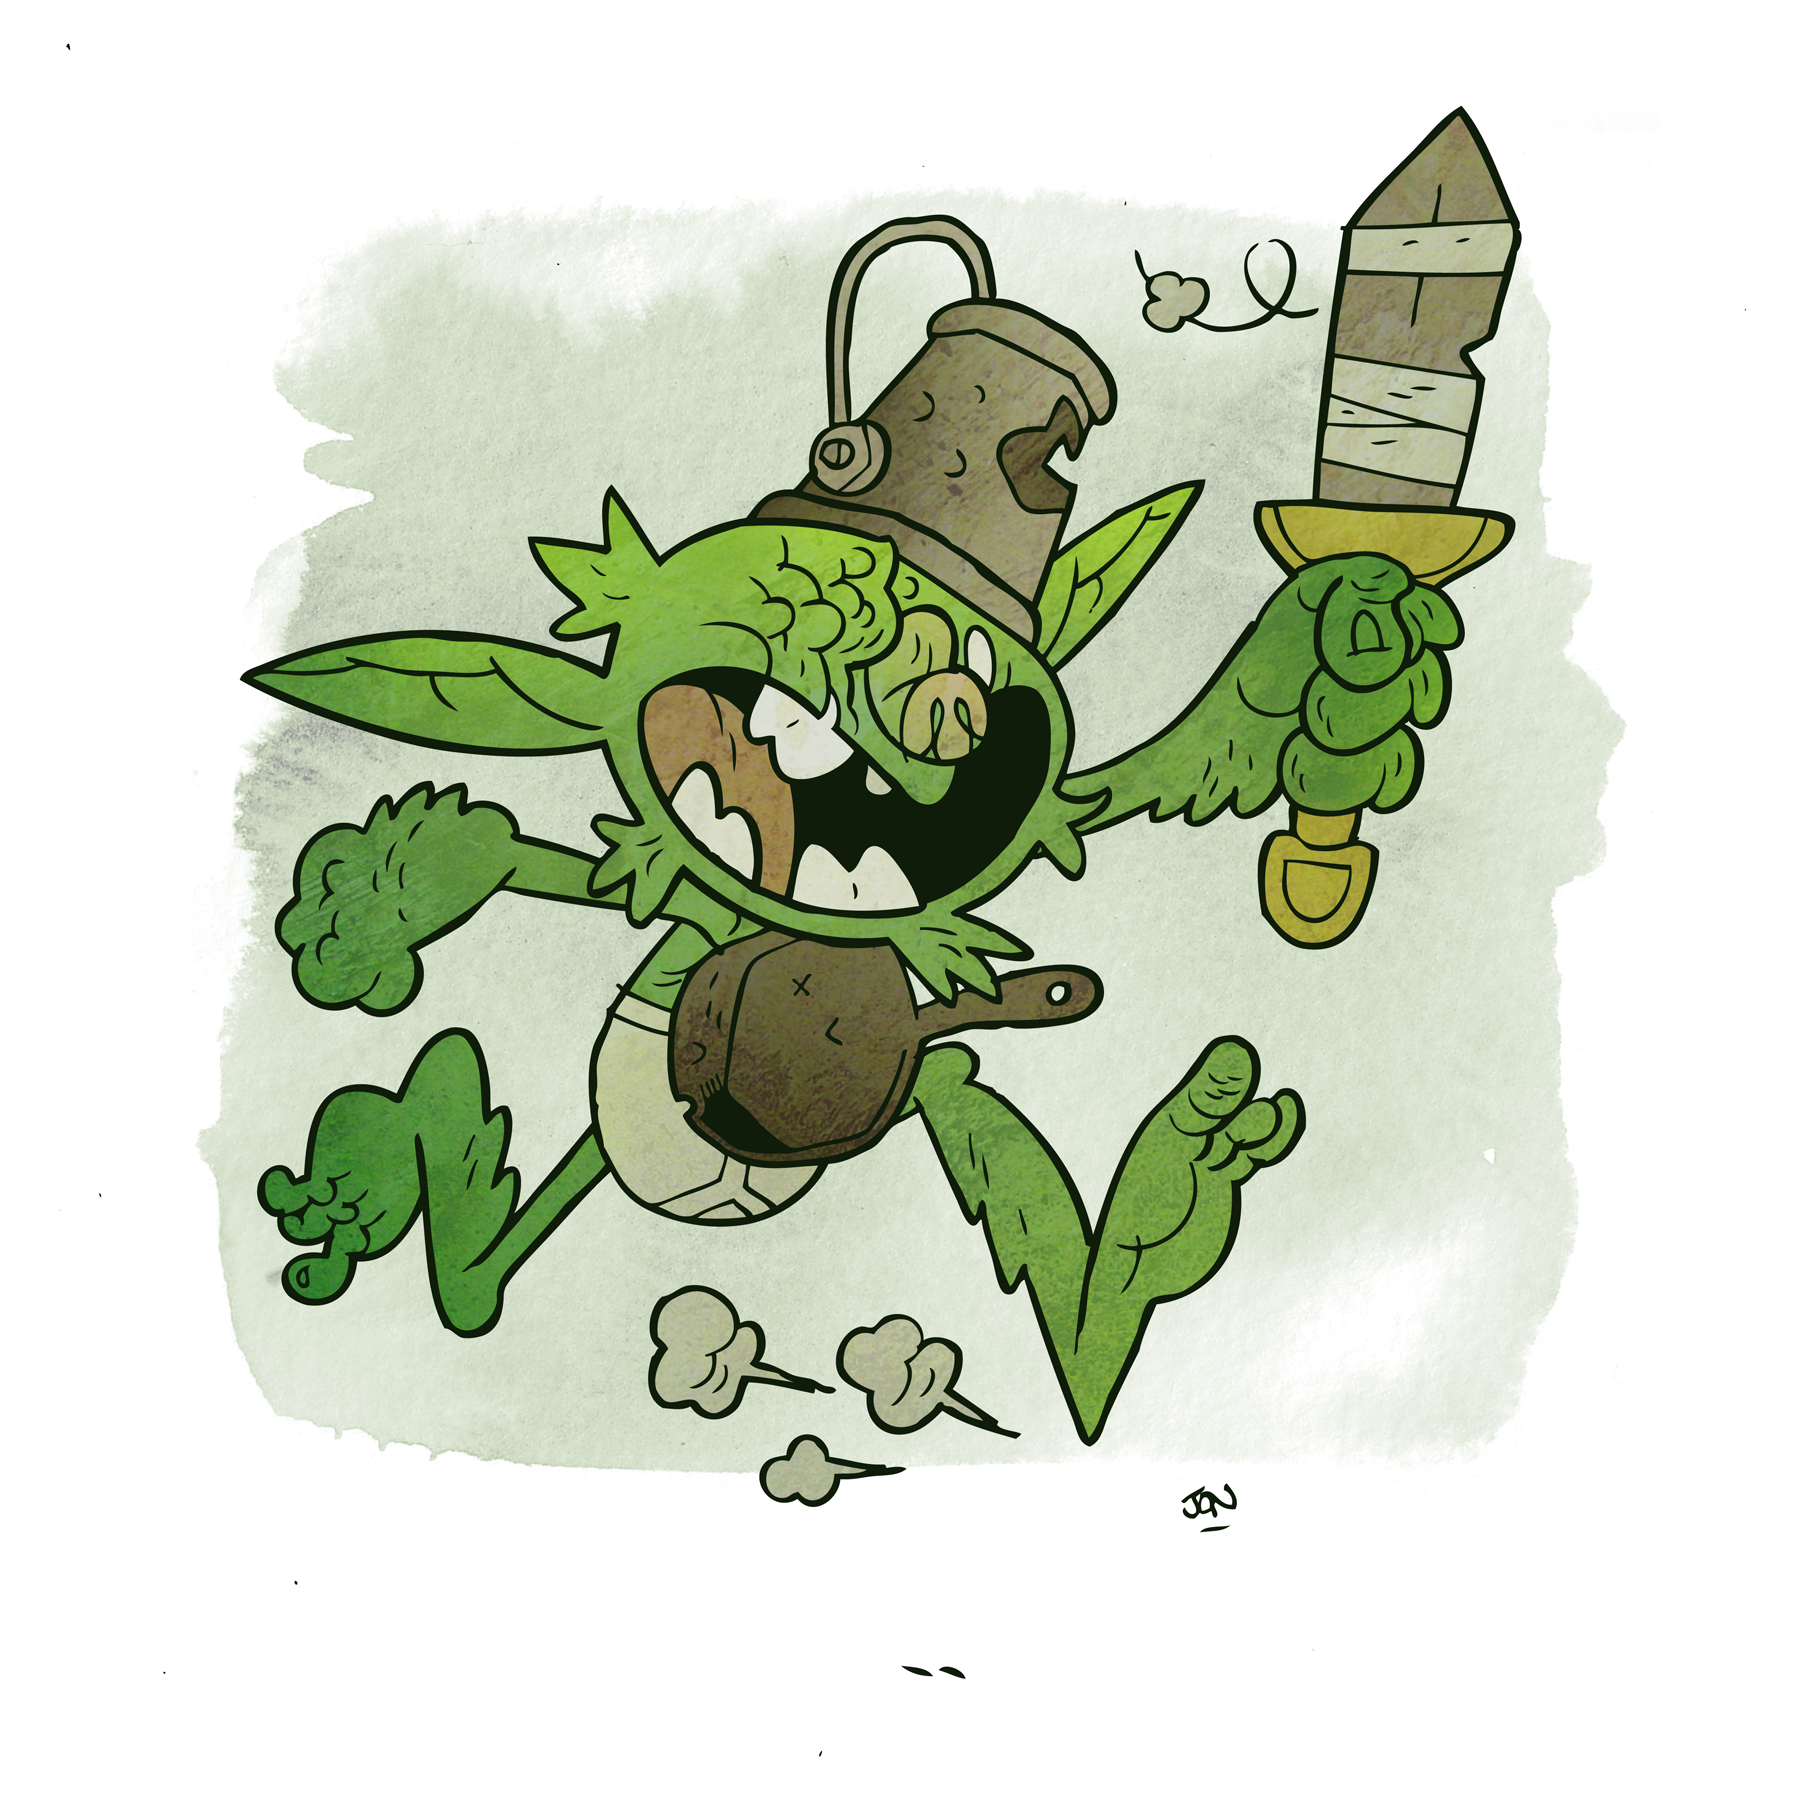 A goblin warrior rushes to the fray.